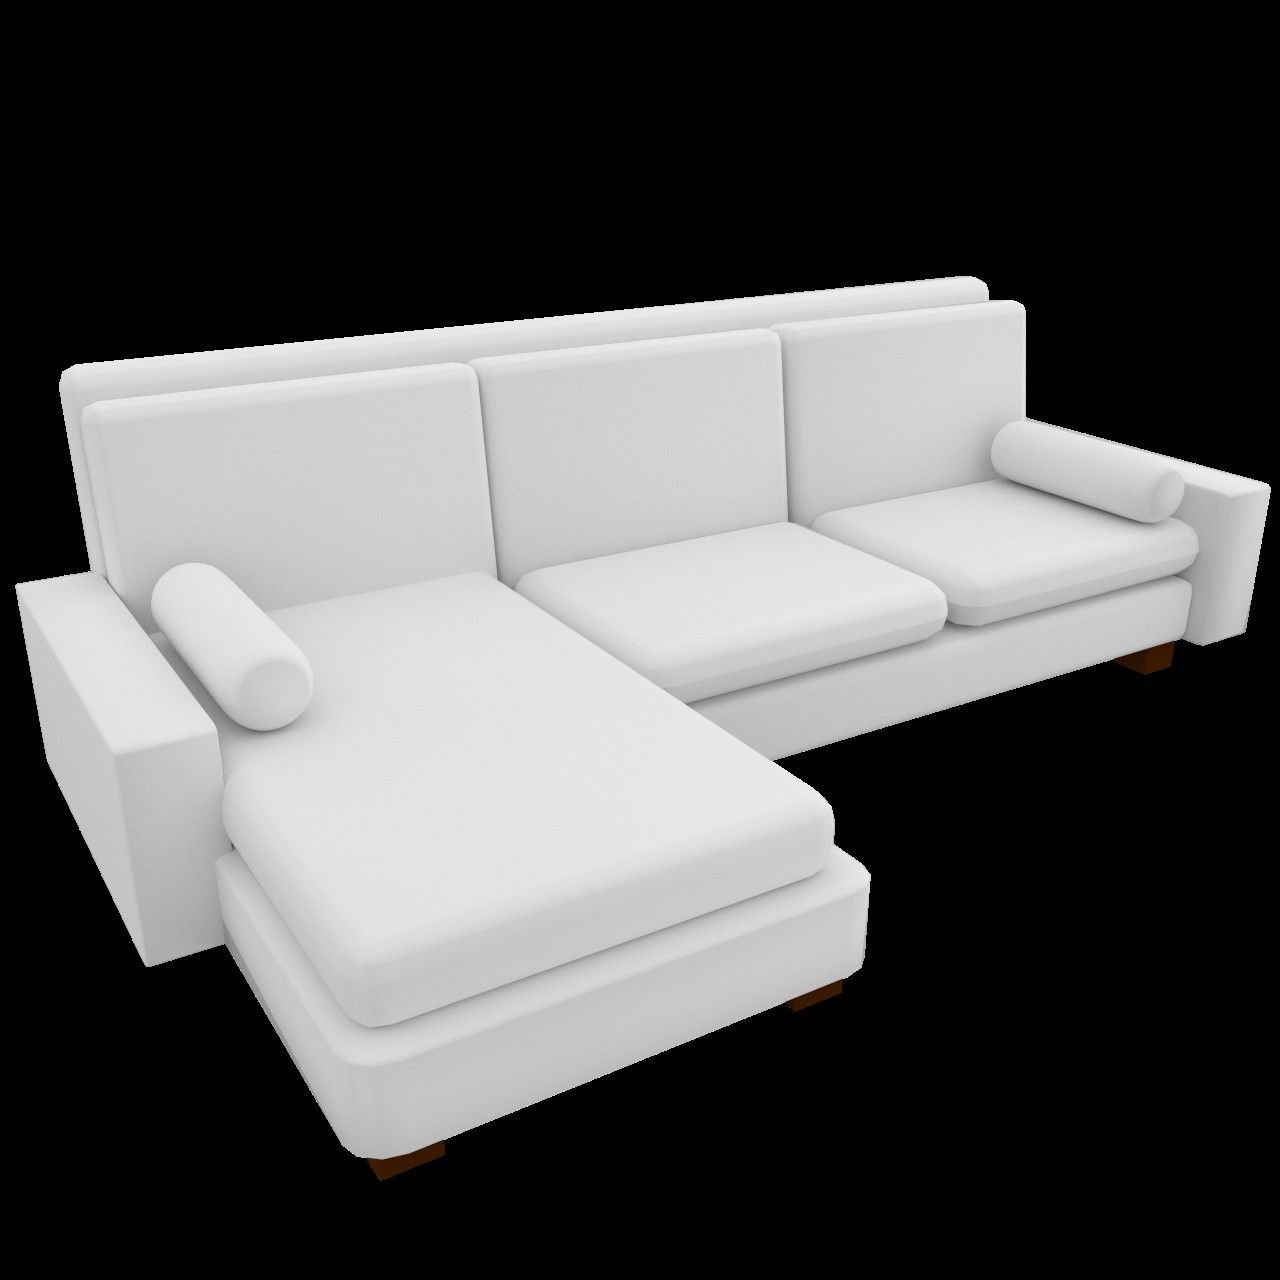 3d l shaped couch sofa uv model